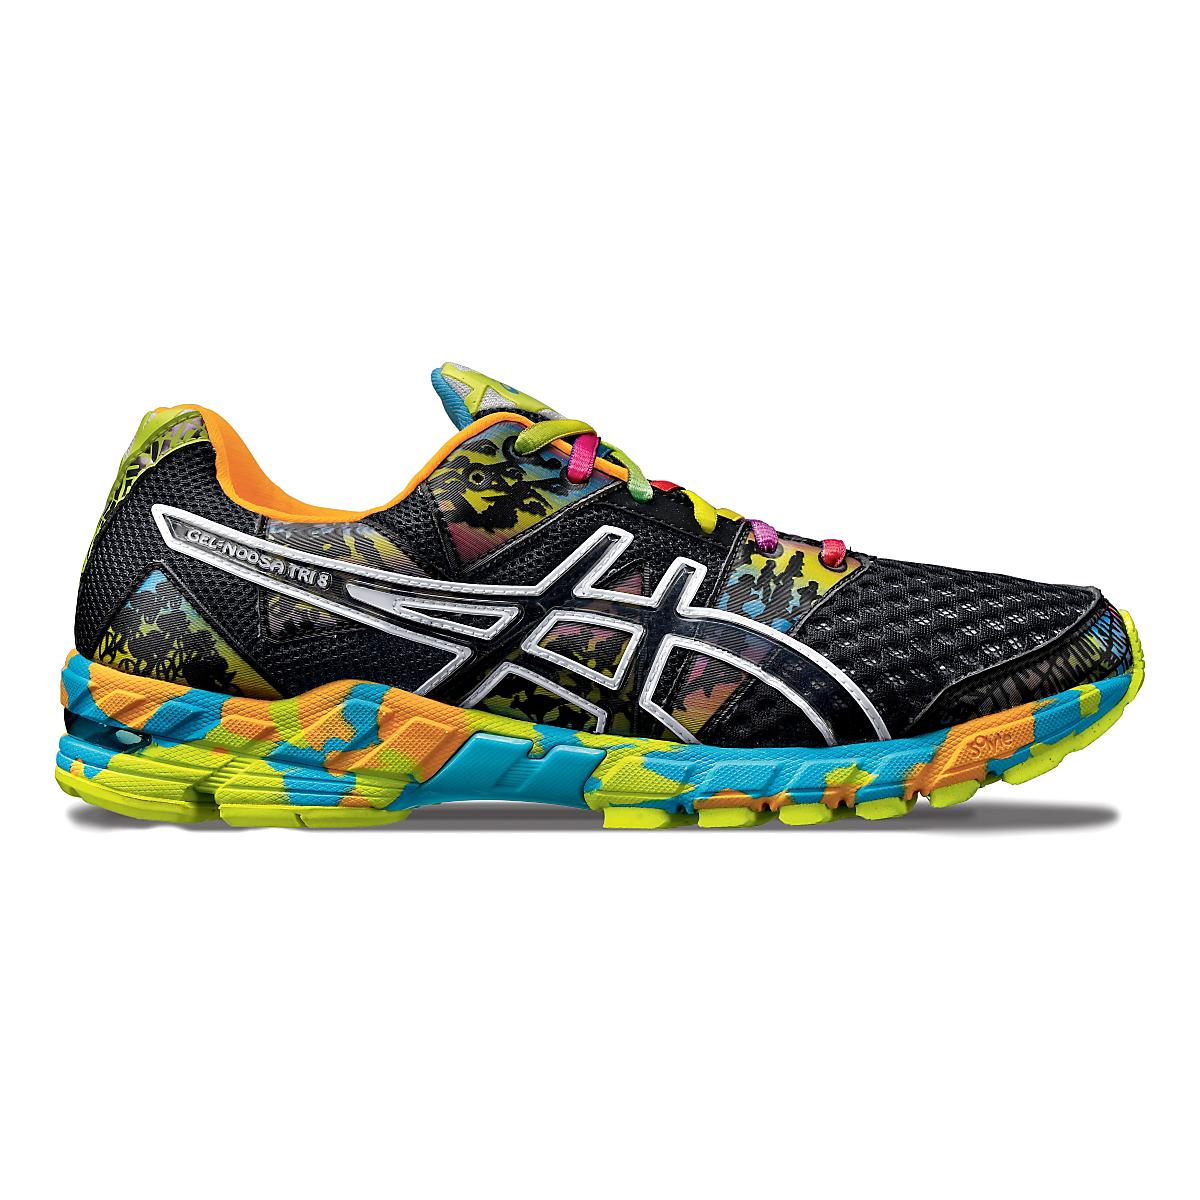 Mens ASICS GEL-Noosa Tri 8 Running Shoe at Road Runner Sports